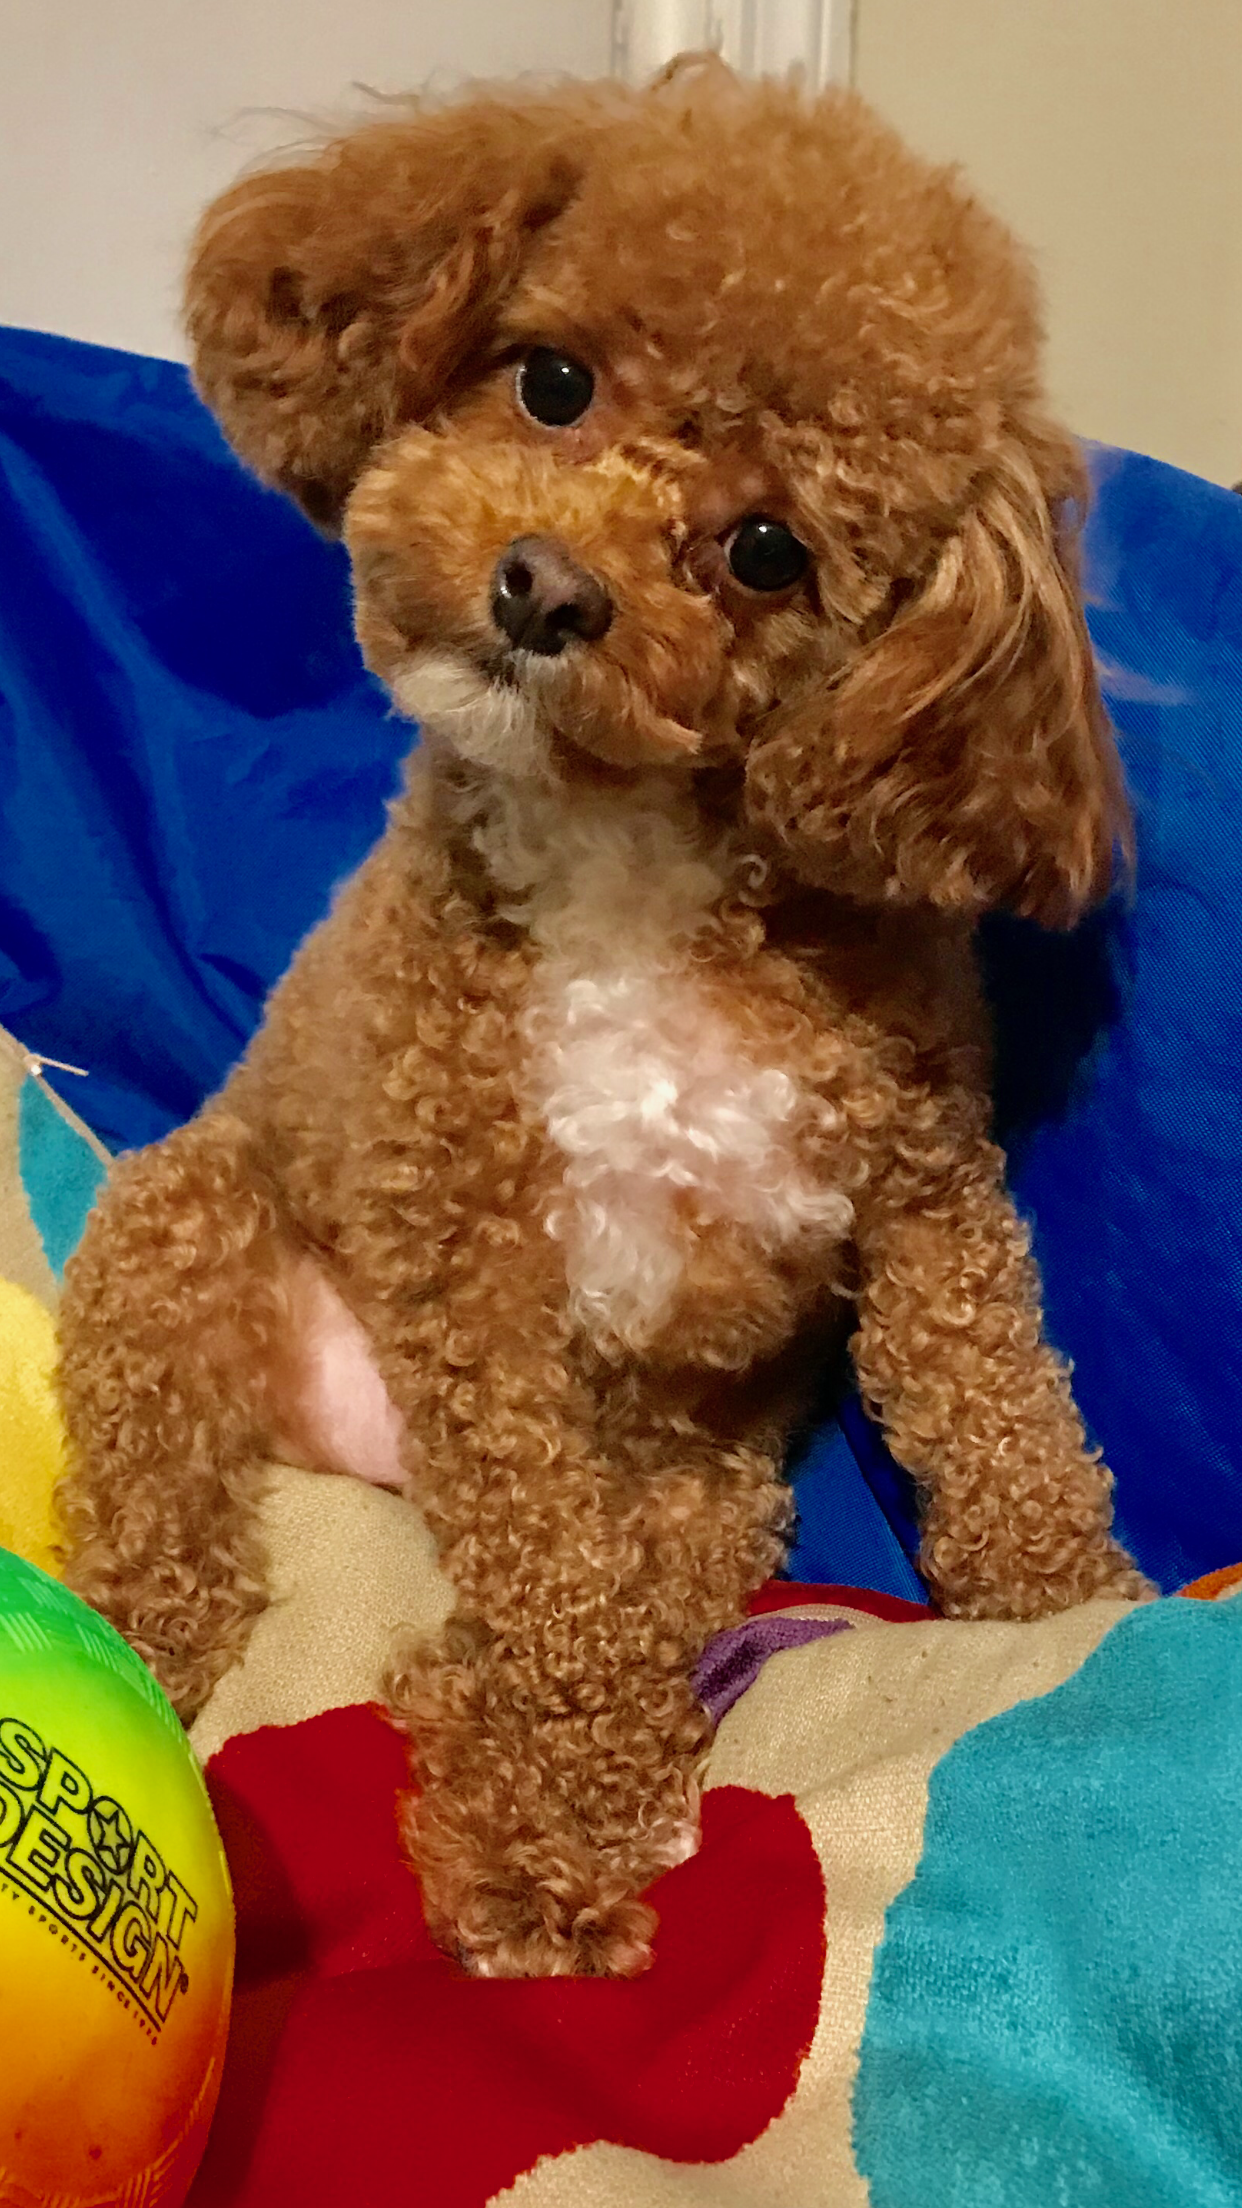 Pin By Pamela Hartman On Toy Poodle Mia Poodle Puppy Poodle Dog Cute Baby Animals